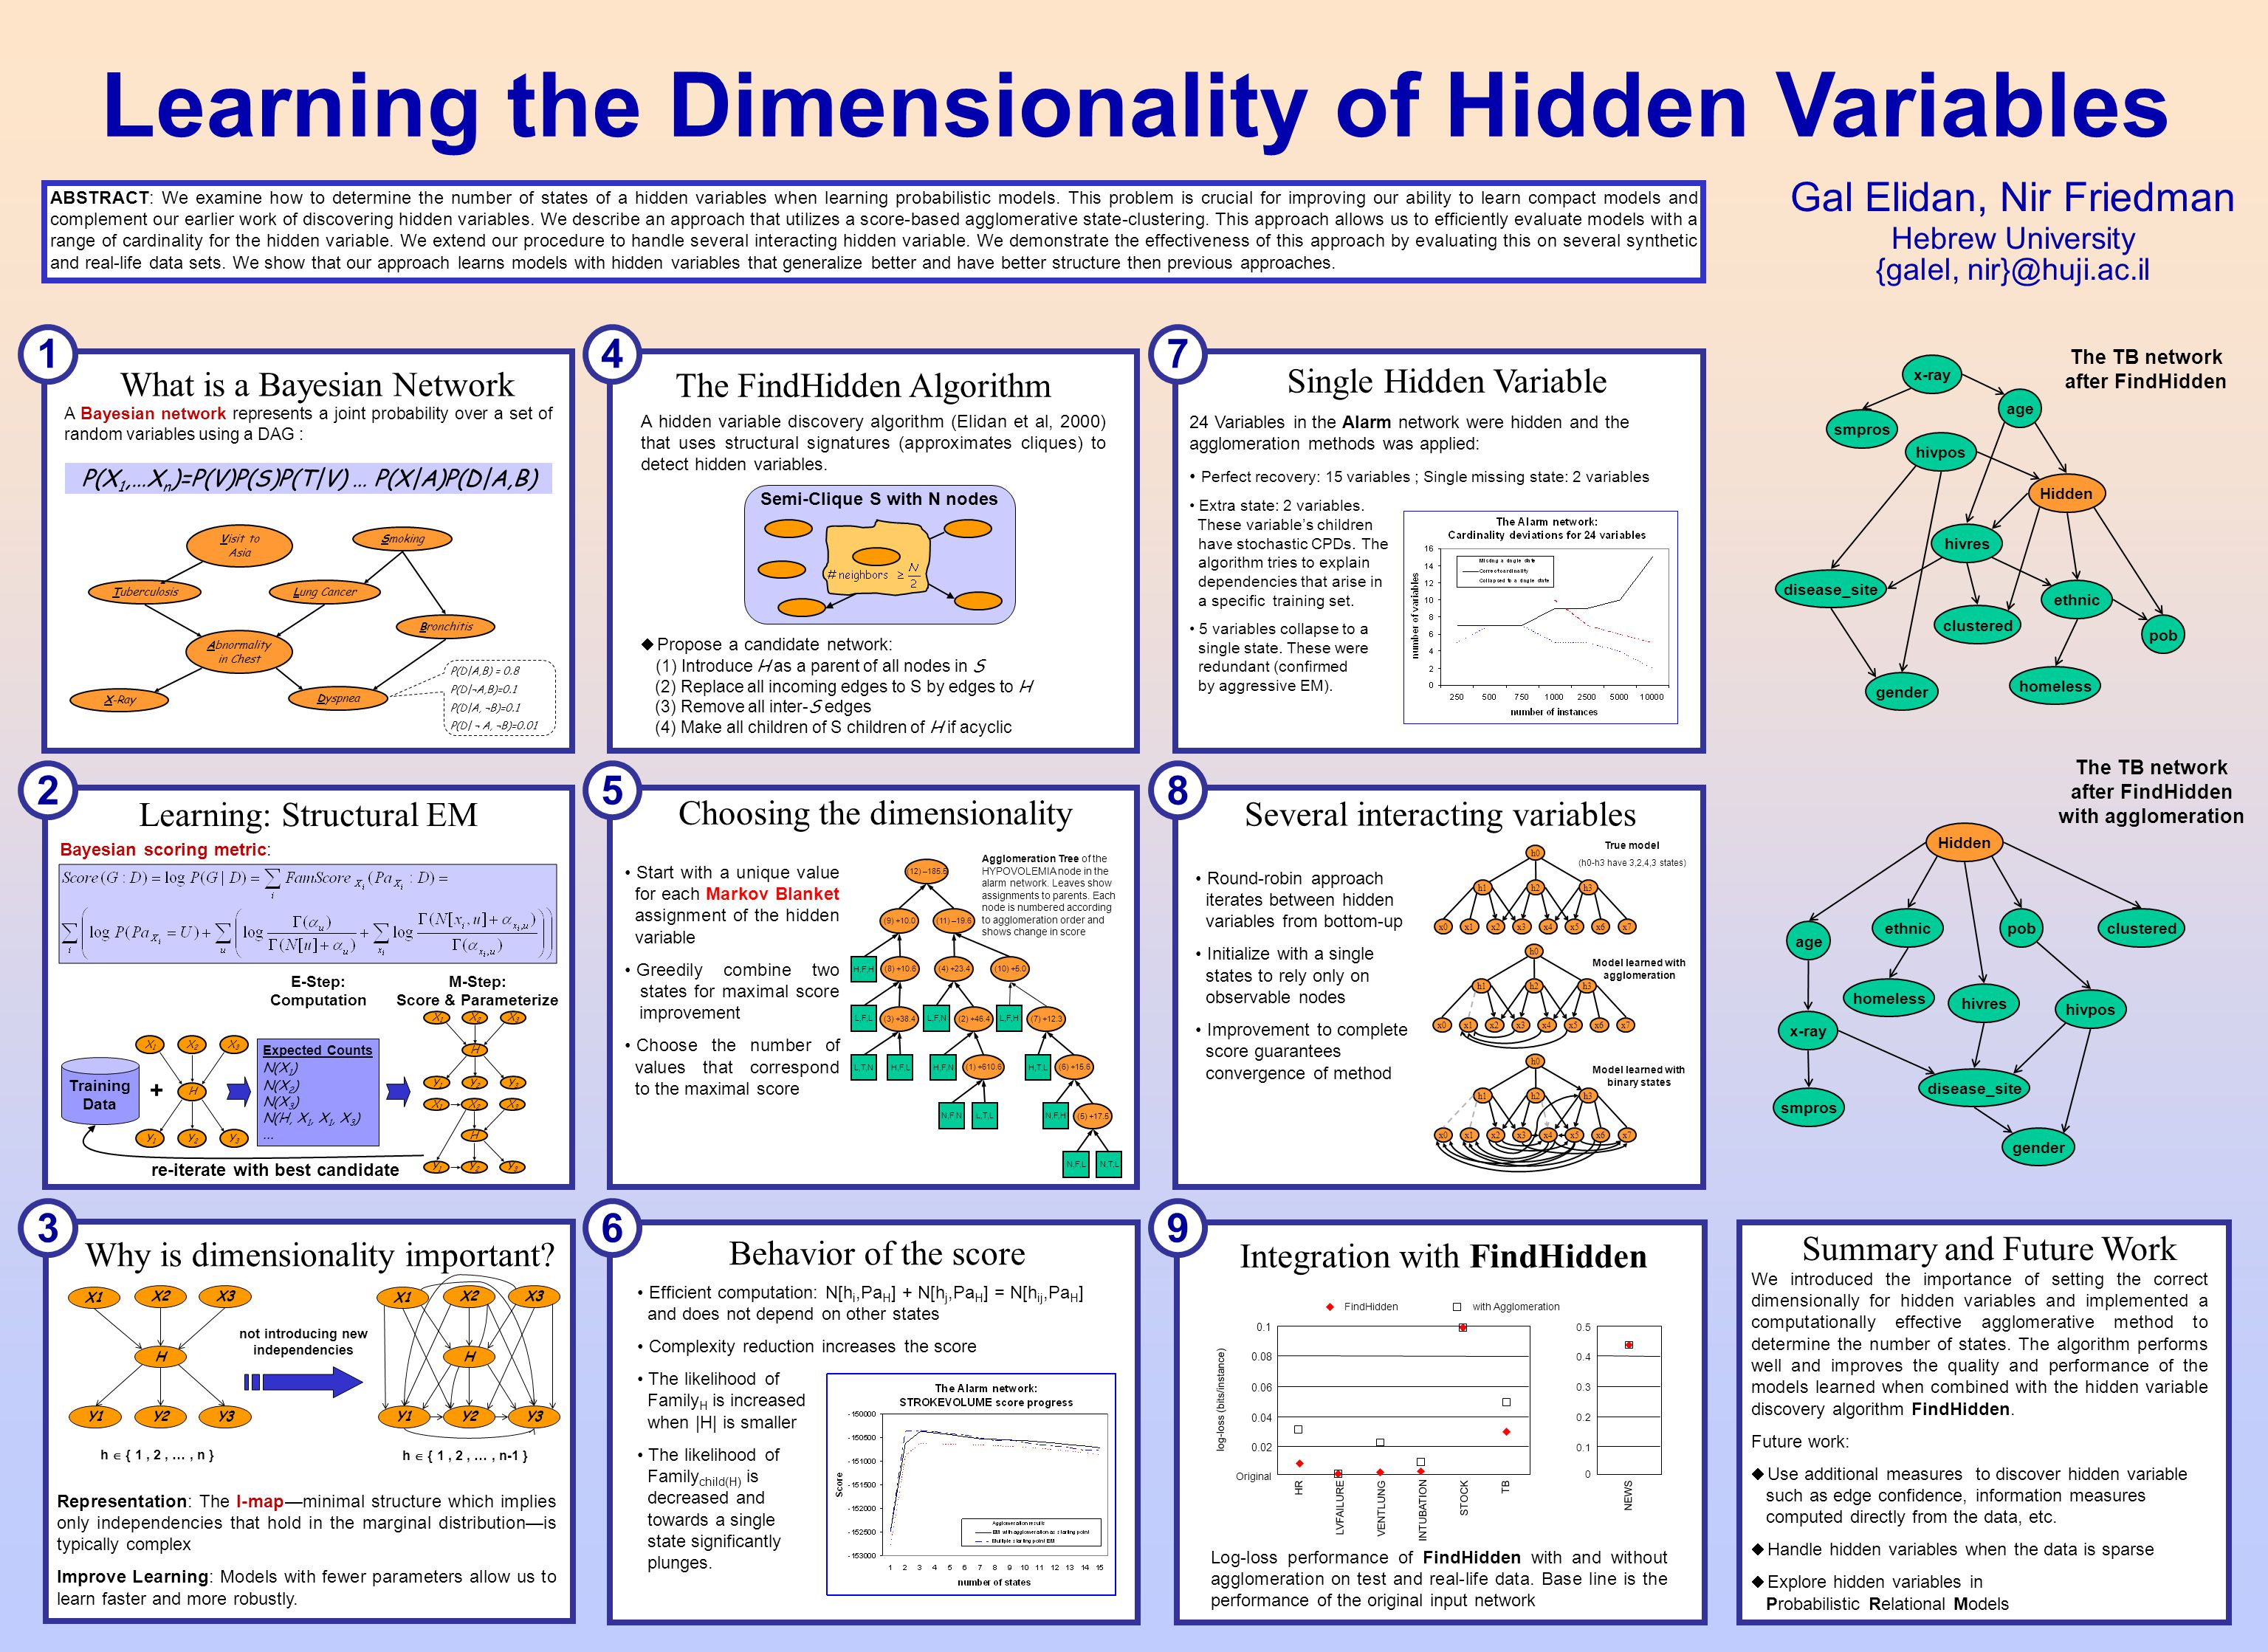 ABSTRACT: We examine how to determine the number of states of a hidden variables when learning probabilistic models. This problem is crucial for impro